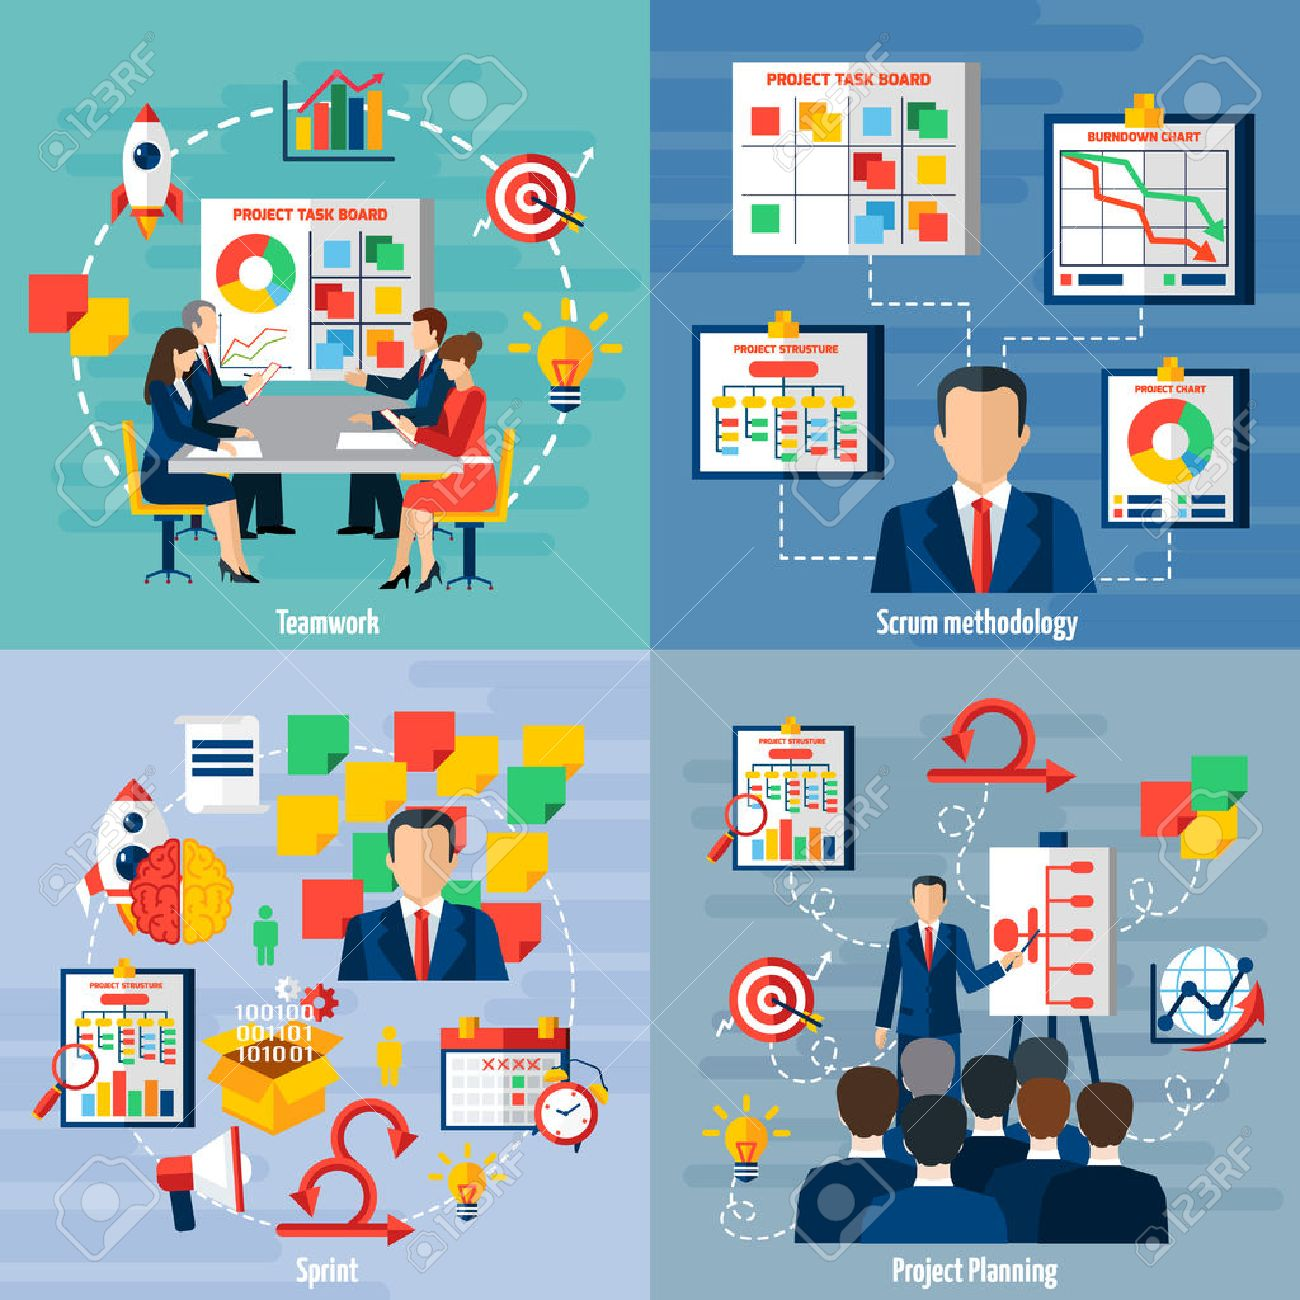 Scrum agile iterative flexible software development framework for teamwork 4 flat icons square composition abstract vector illustration - 59352399